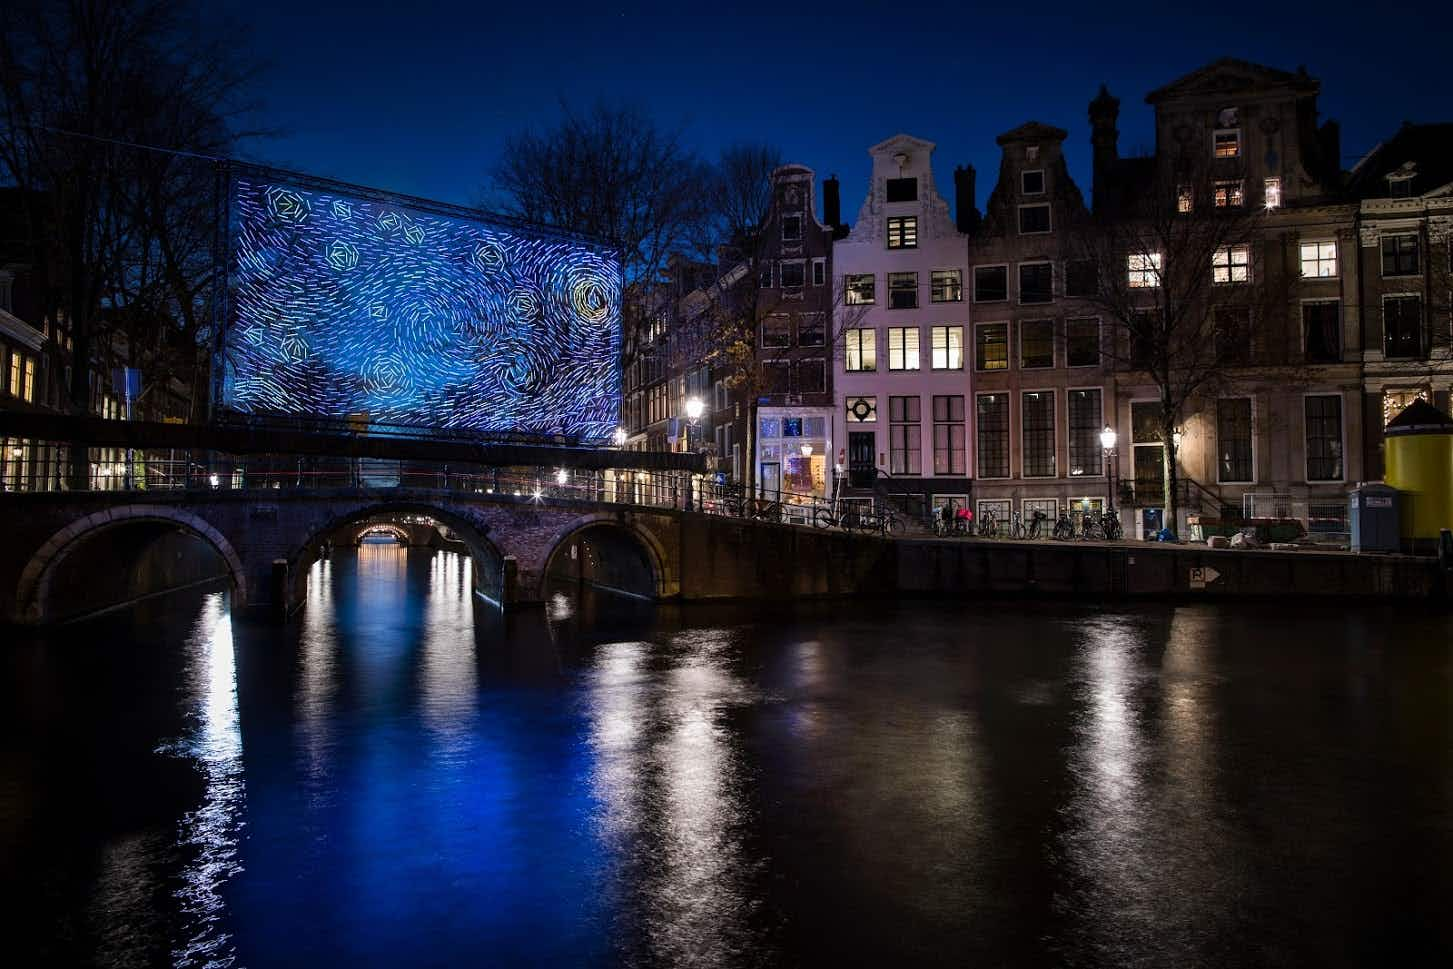 Van Gogh's 'The Starry Night' comes to life in Amsterdam